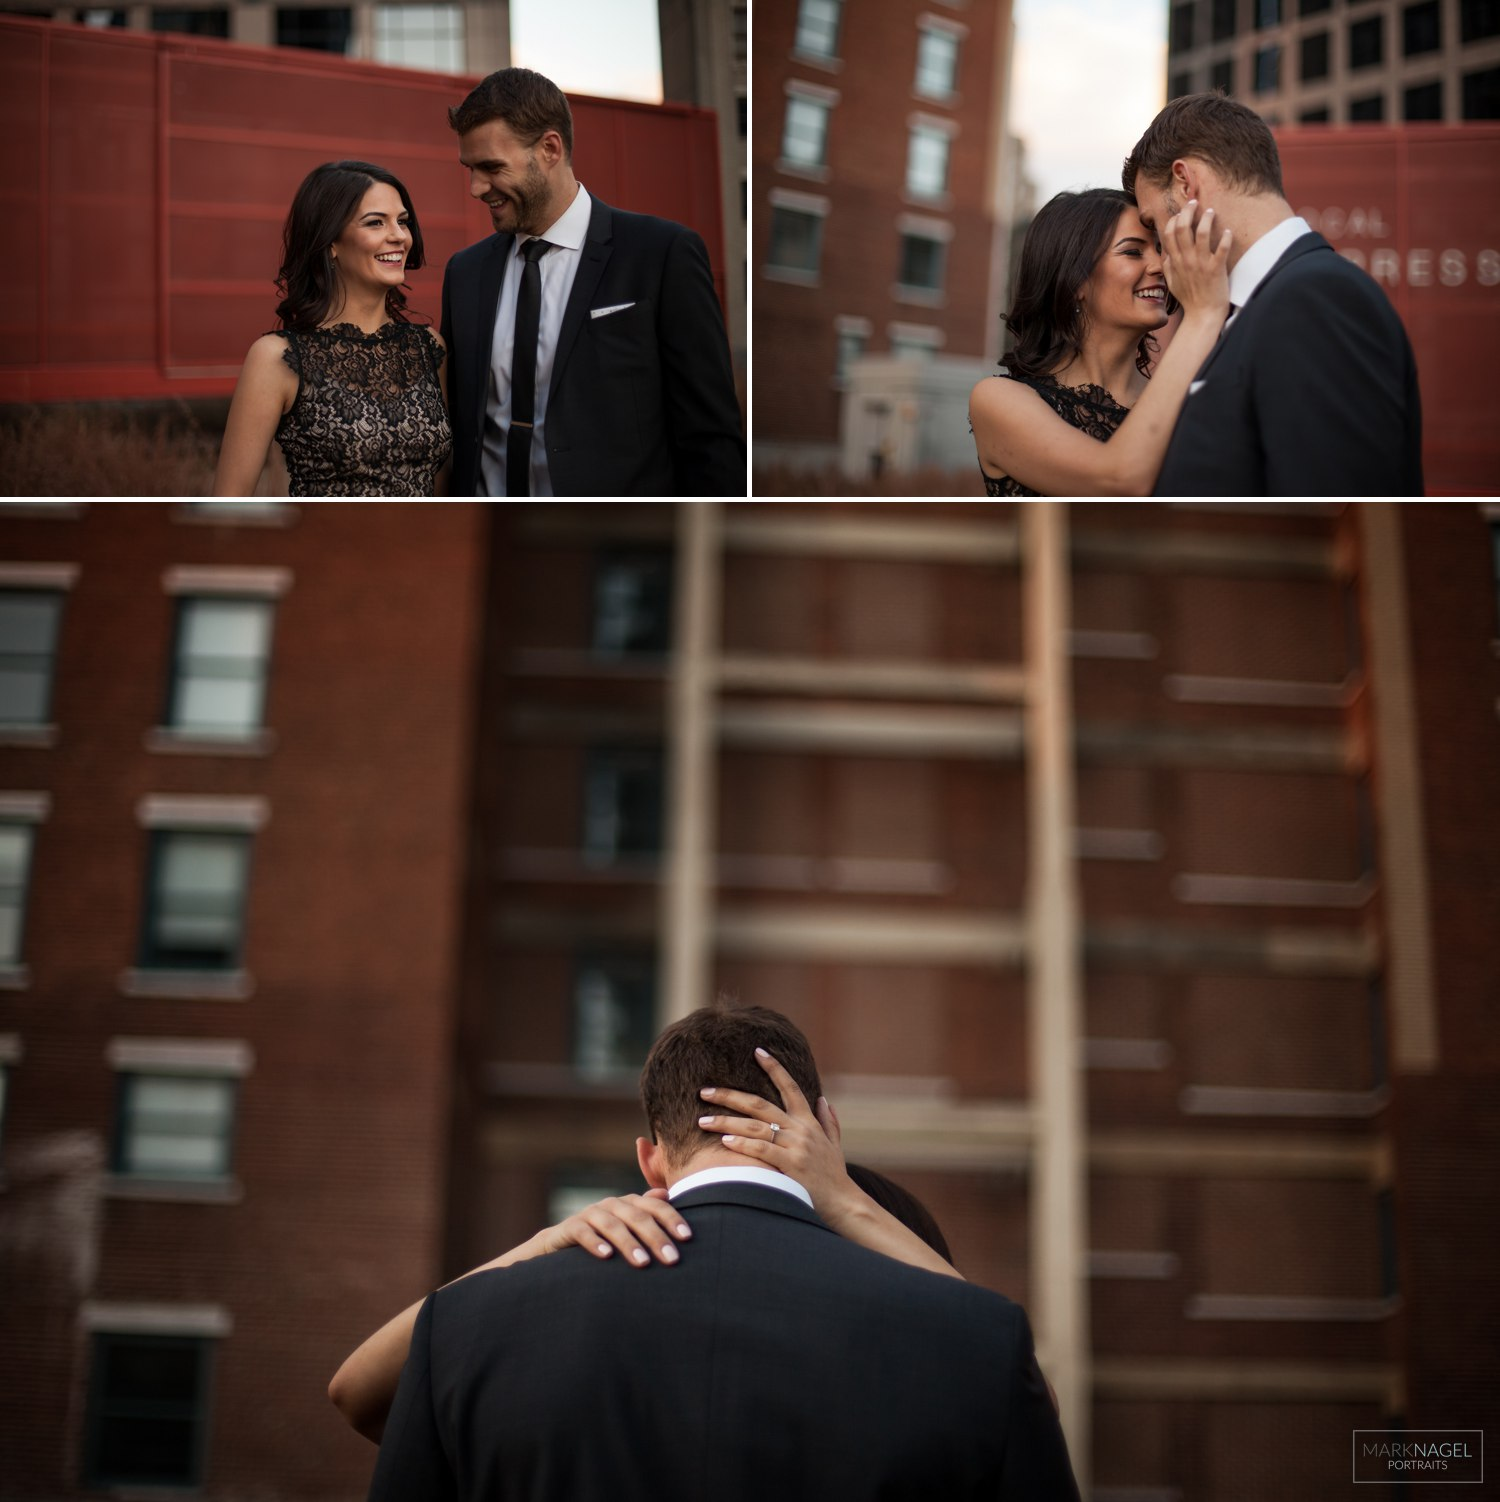 dressed up classy - urban engagement session